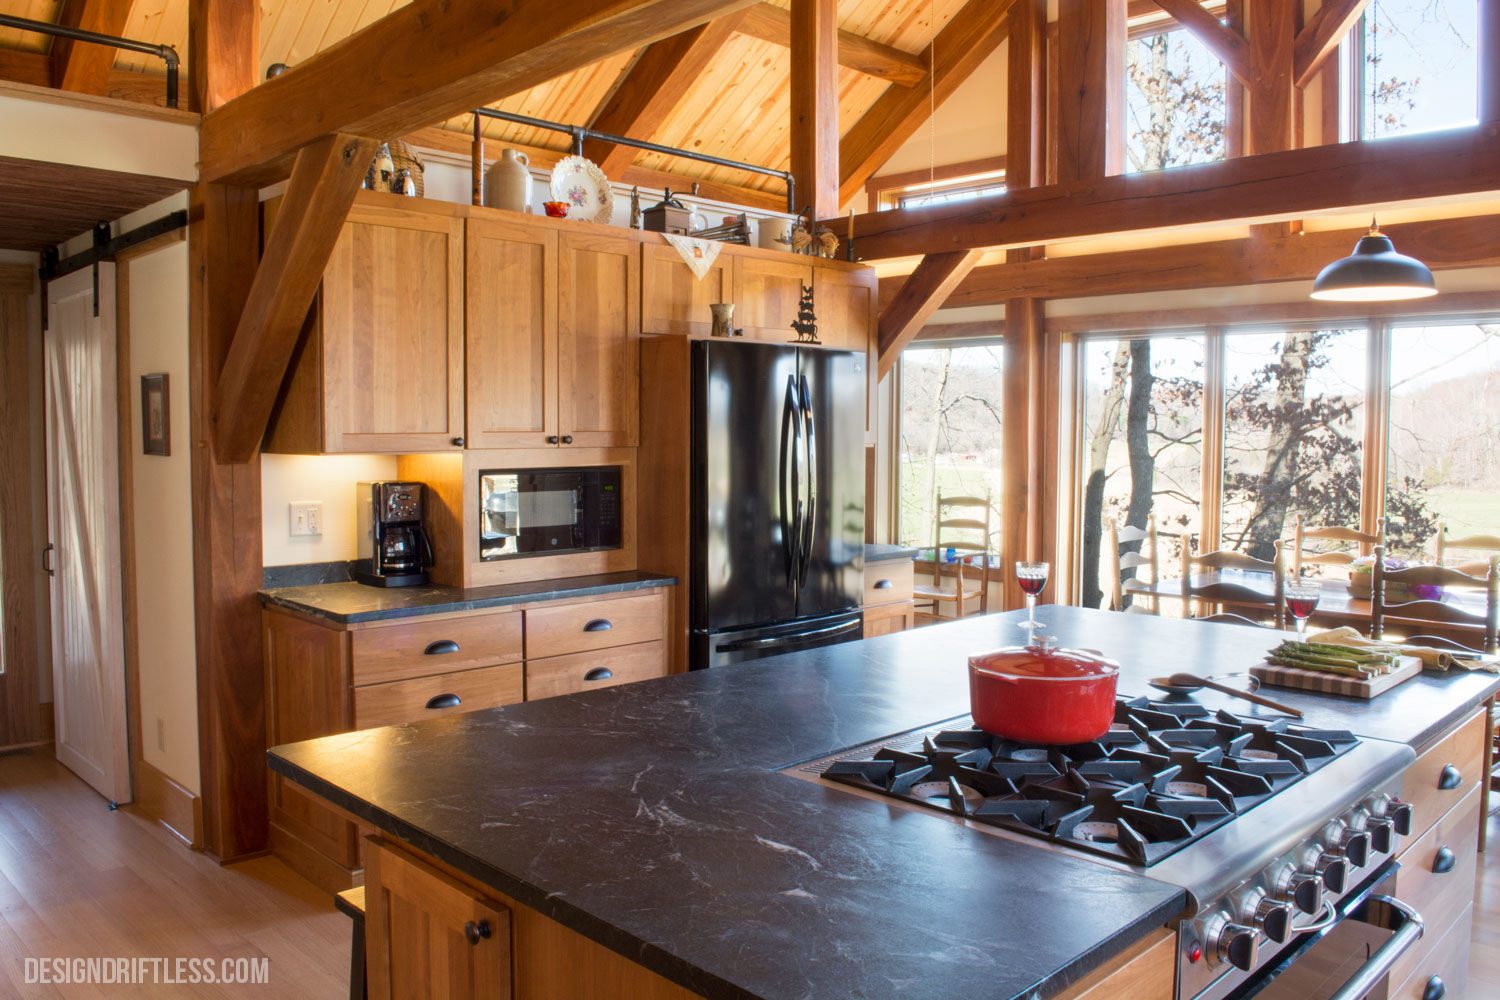 T-Squared Designs designed the house and within it, the kitchen, to reflect the clients' tastes as well as the pastoral setting